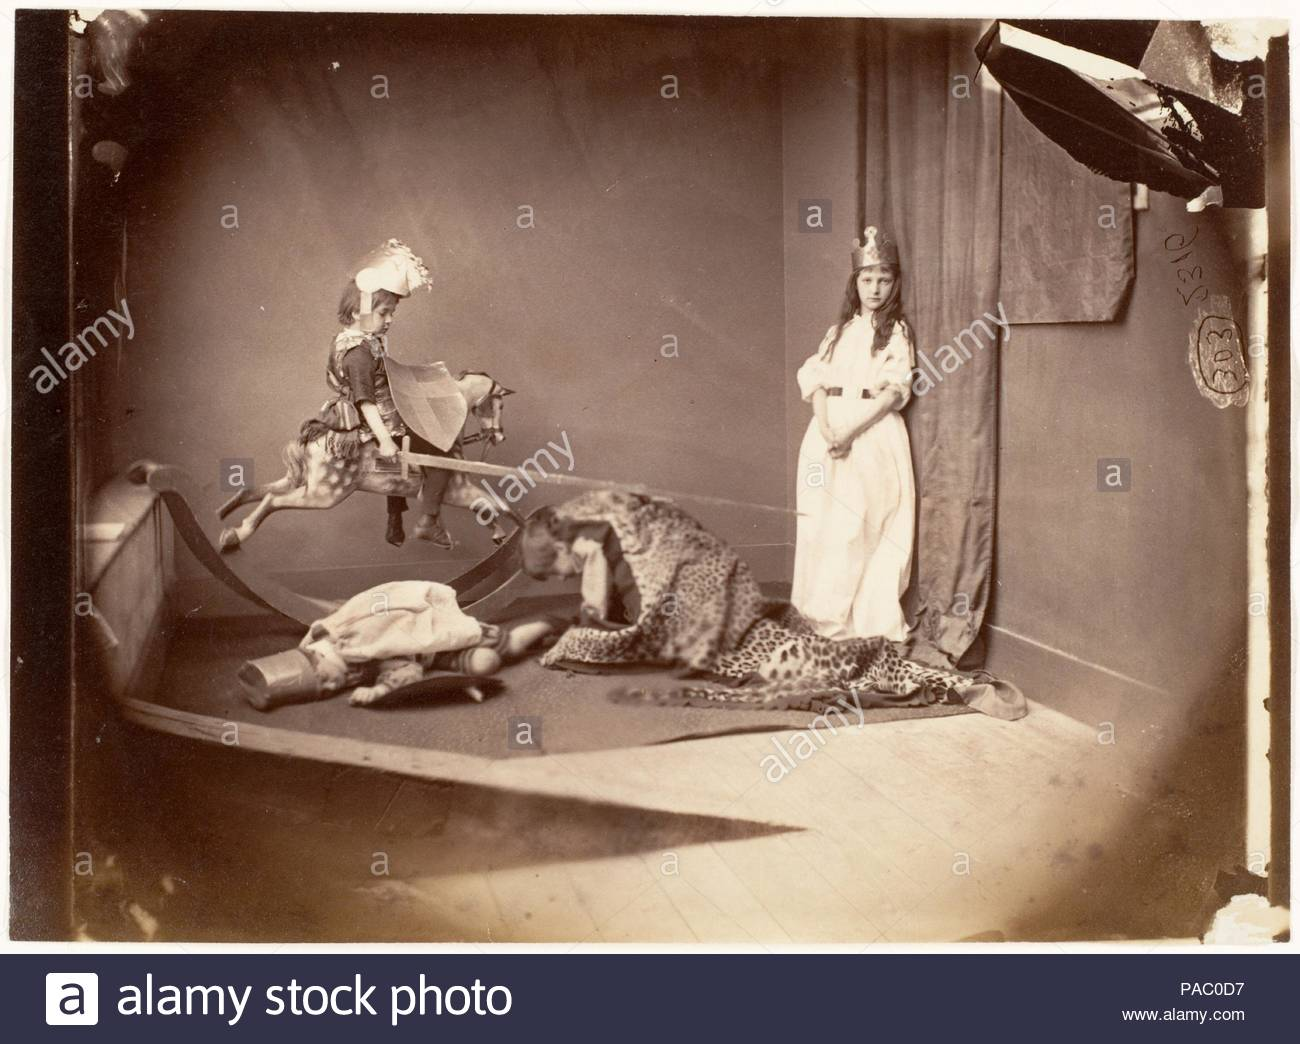 St. George and the Dragon. Artist: Lewis Carroll (British, Daresbury, Cheshire 1832-1898 Guildford). Dimensions: Image: 11.7 × 16 cm (4 5/8 × 6 5/16 in.). Date: June 26, 1875.  In 1872, Carroll had a studio built above his rooms at Christ Church so that he could make photographs even in inclement weather. With trunks full of toys and costumes from the Drury Lane Theatre, the 'glass house' was a paradise for children. Xie (Alexandra) Kitchin, a beautiful and photogenic child, was Carroll's muse in the 1870s. Born in 1864, she was the daughter of George William Kitchin, a colleague and an old fr - Stock Image